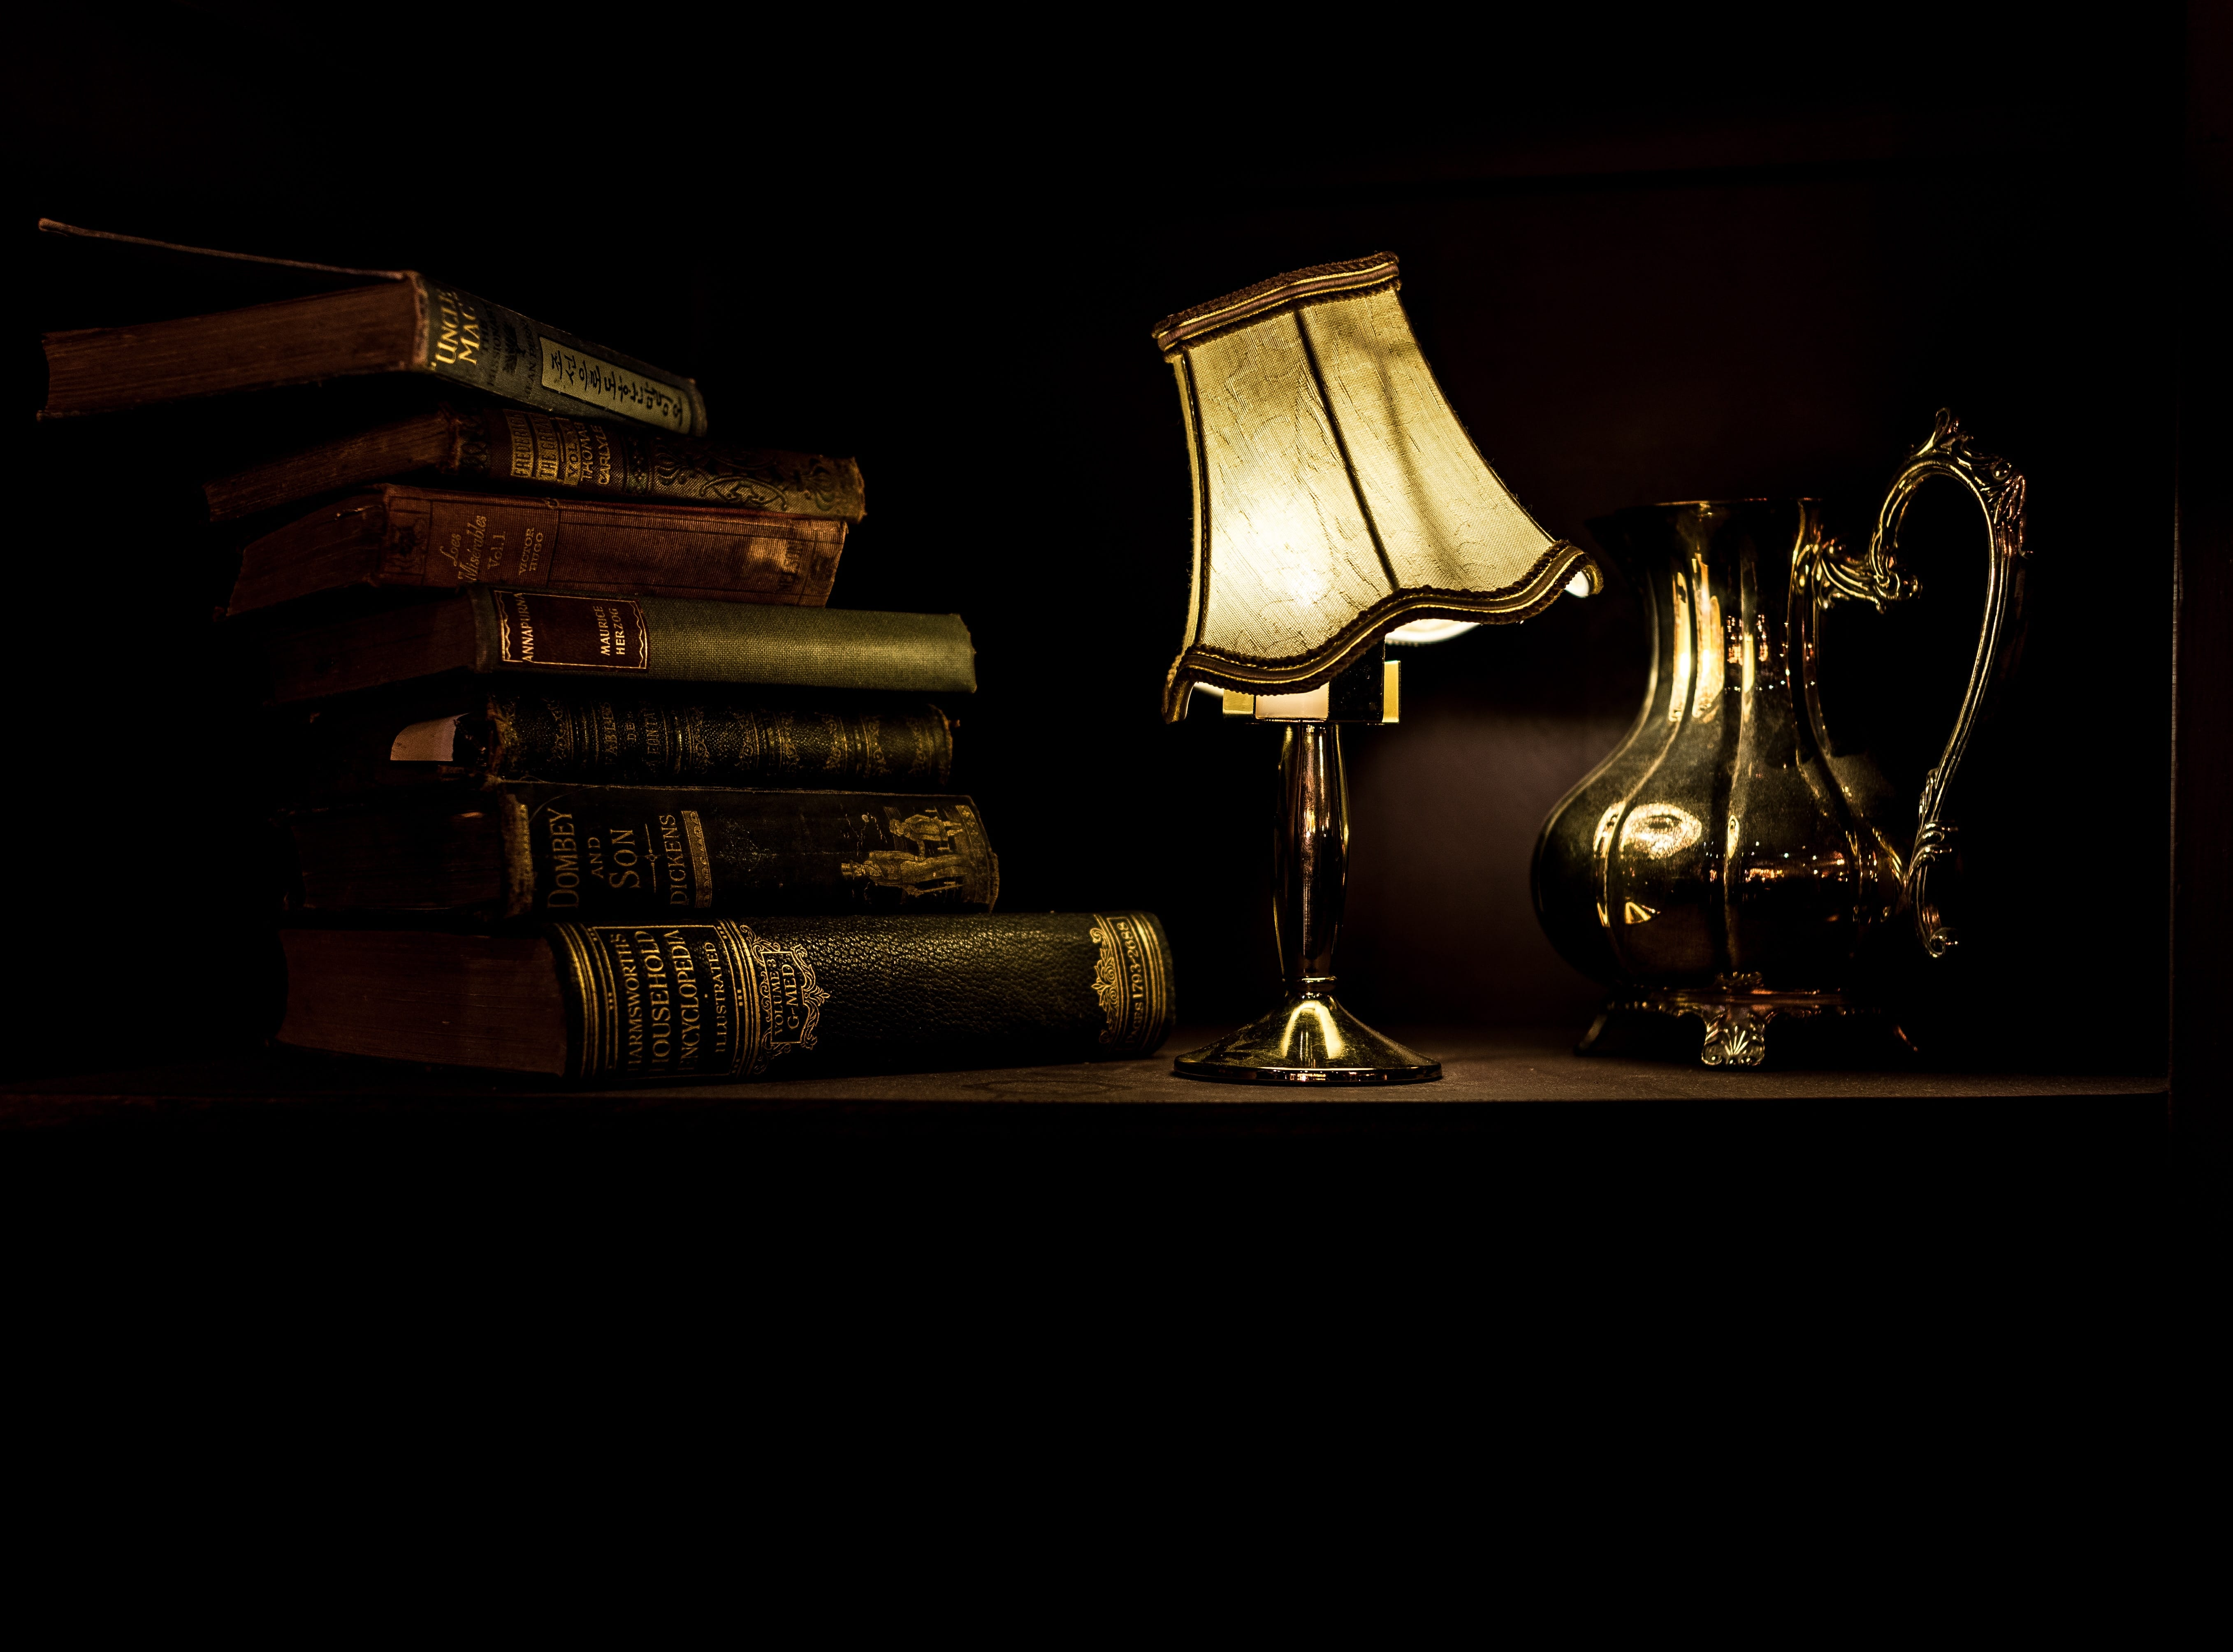 Books on a desk with a lamp and pitcher; image by Jez Timms, via Unsplash.com.